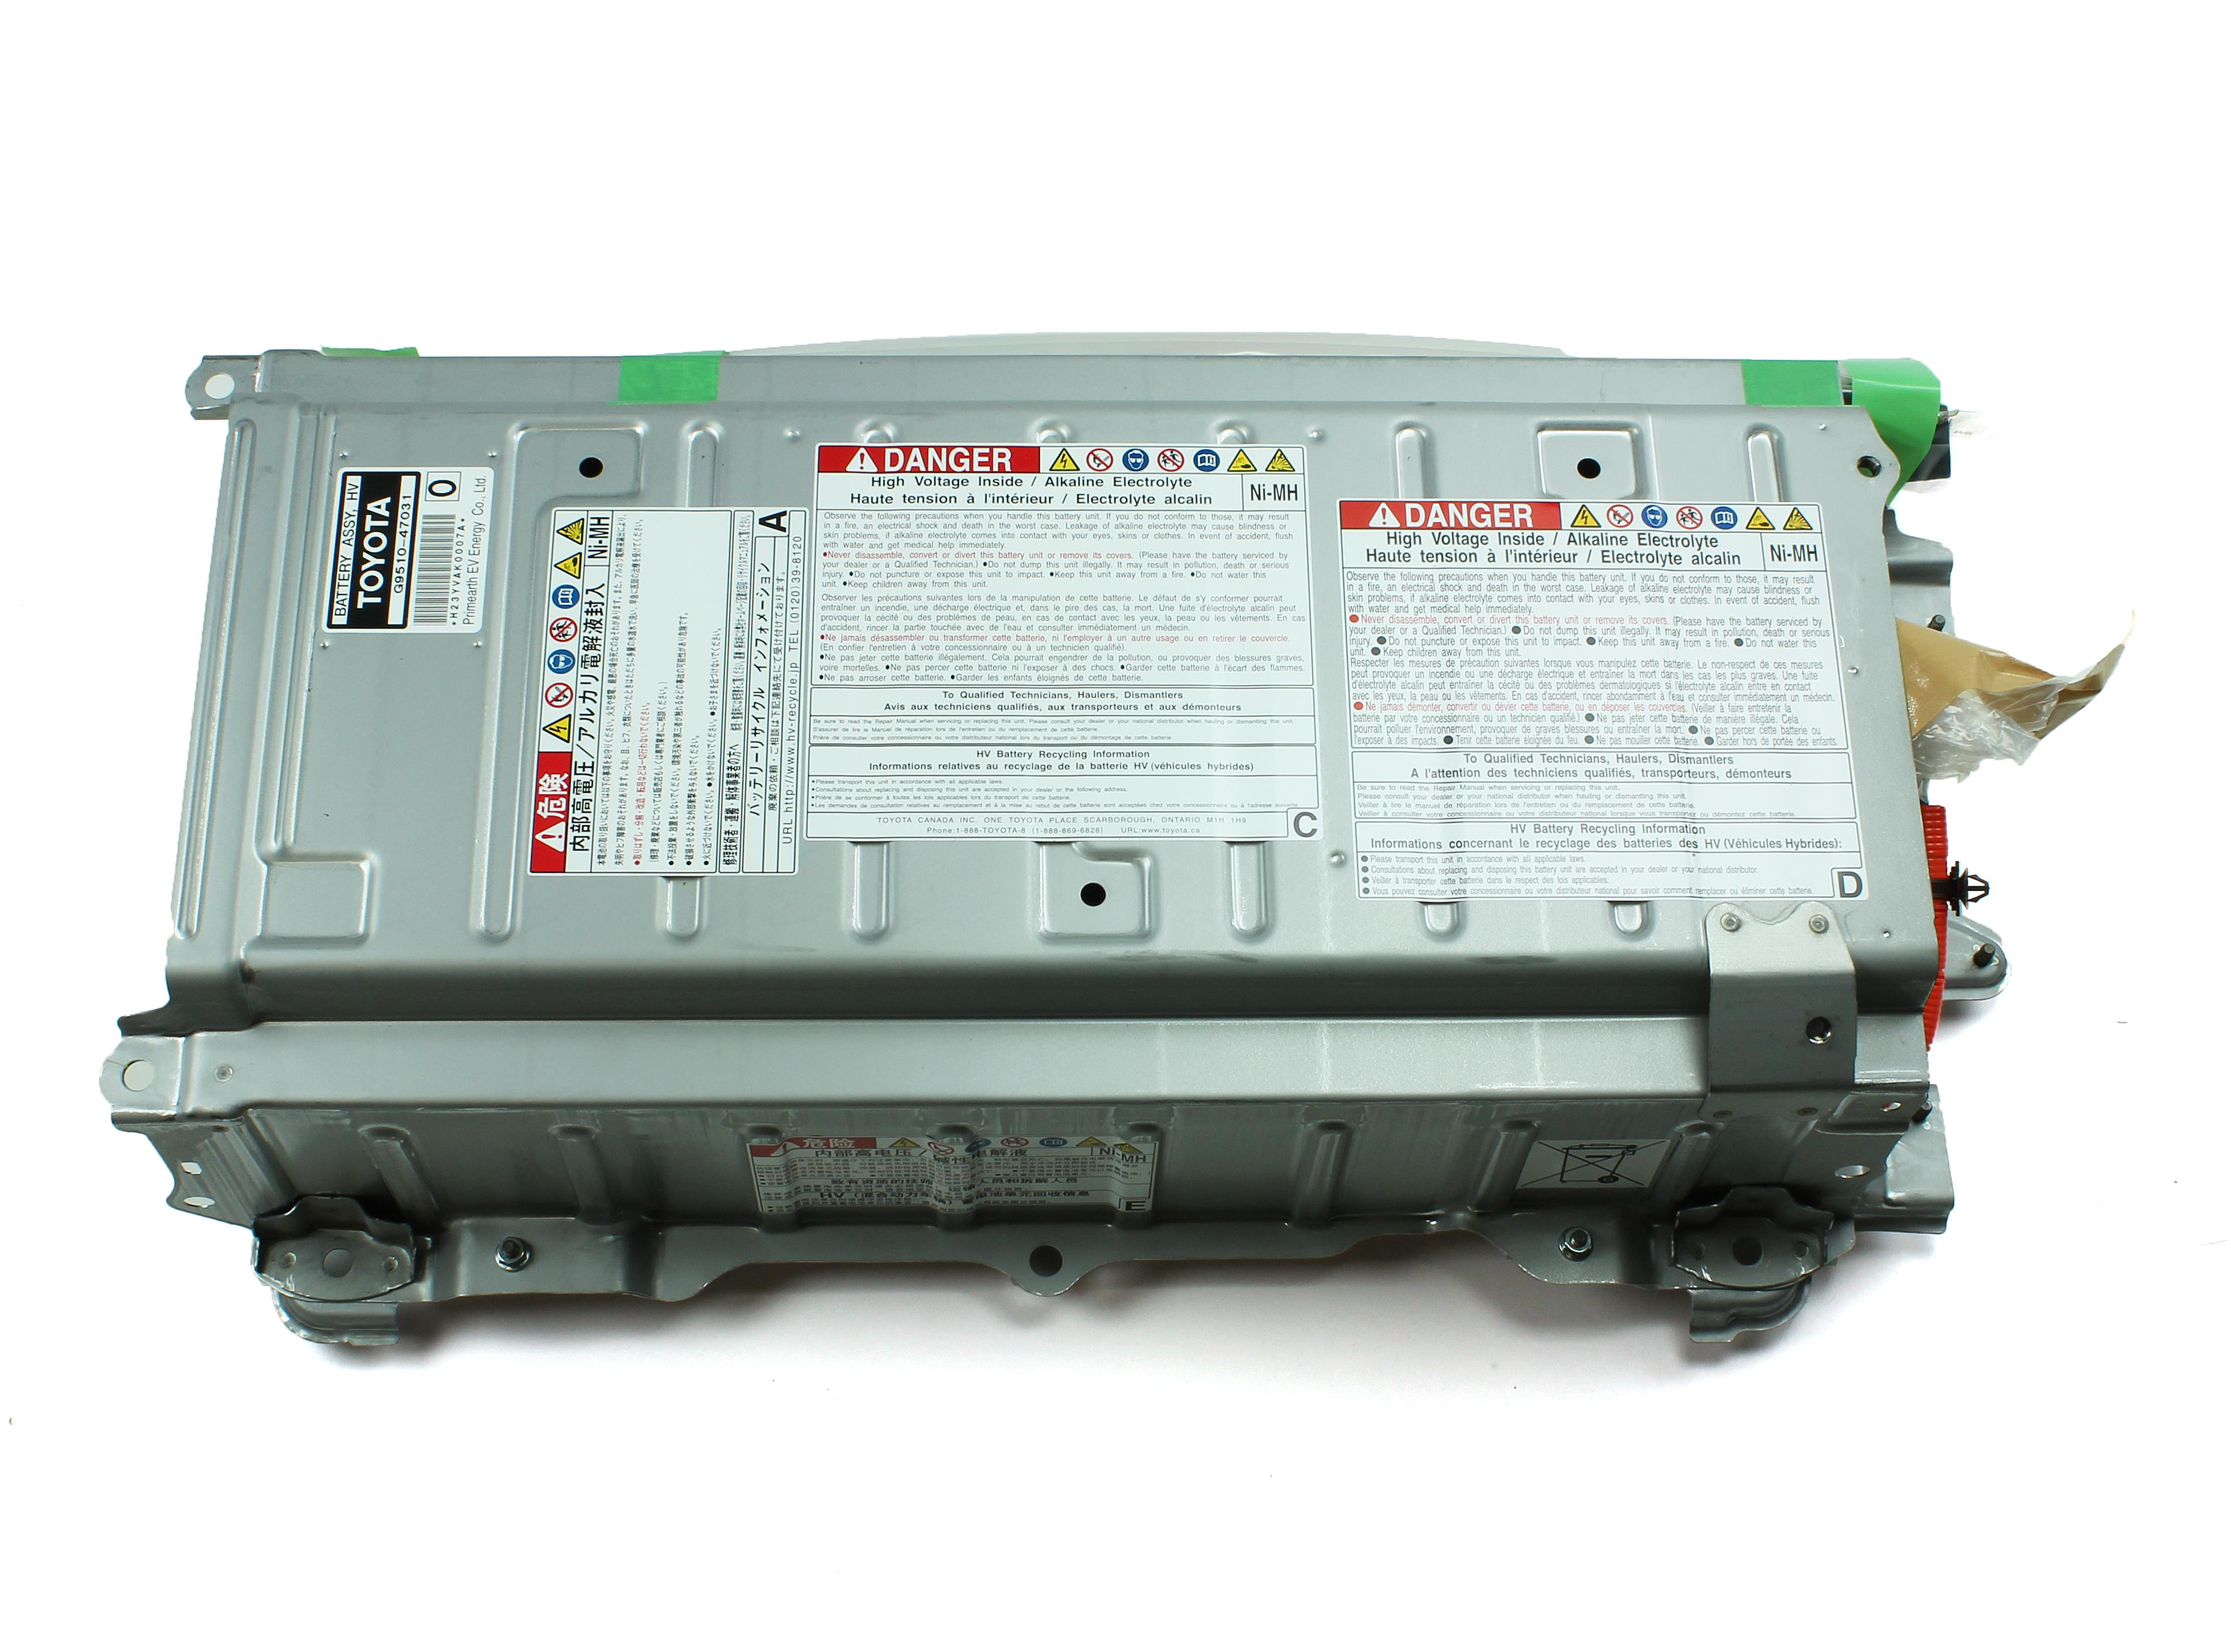 2007 Toyota Prius Battery Assembly  Hv Supply  Electrical